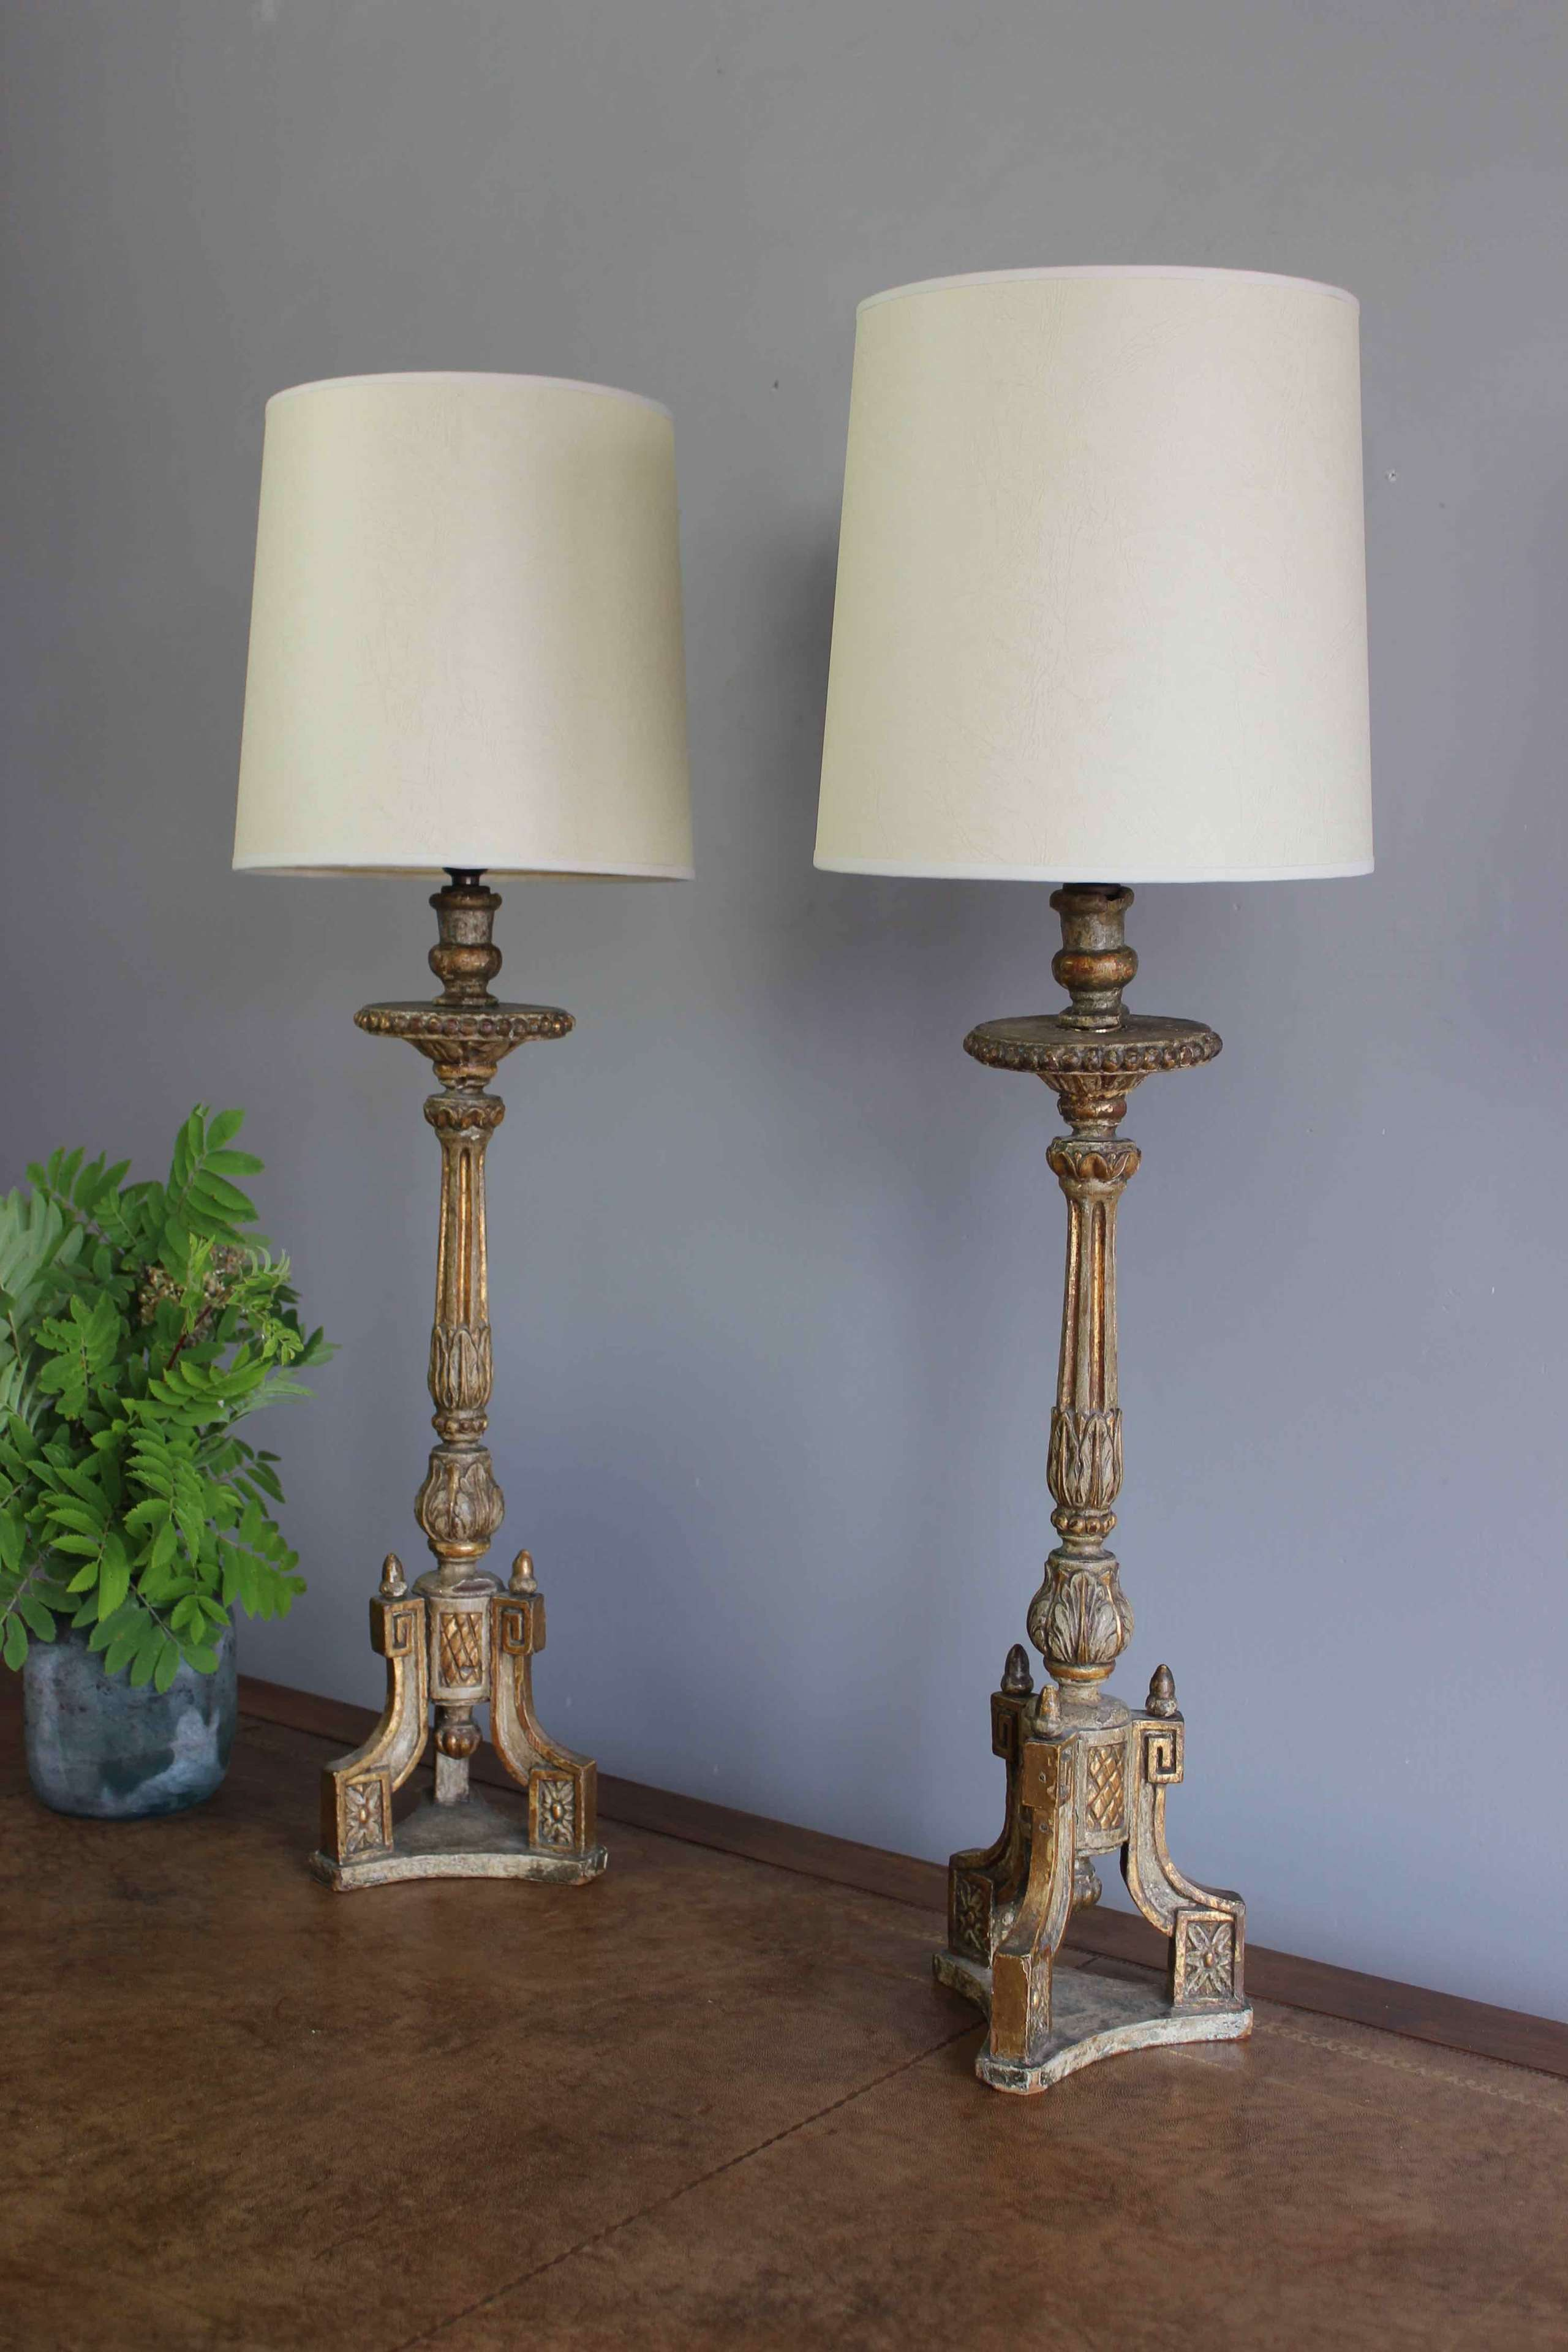 Pair of 19th C giltwood table lamps